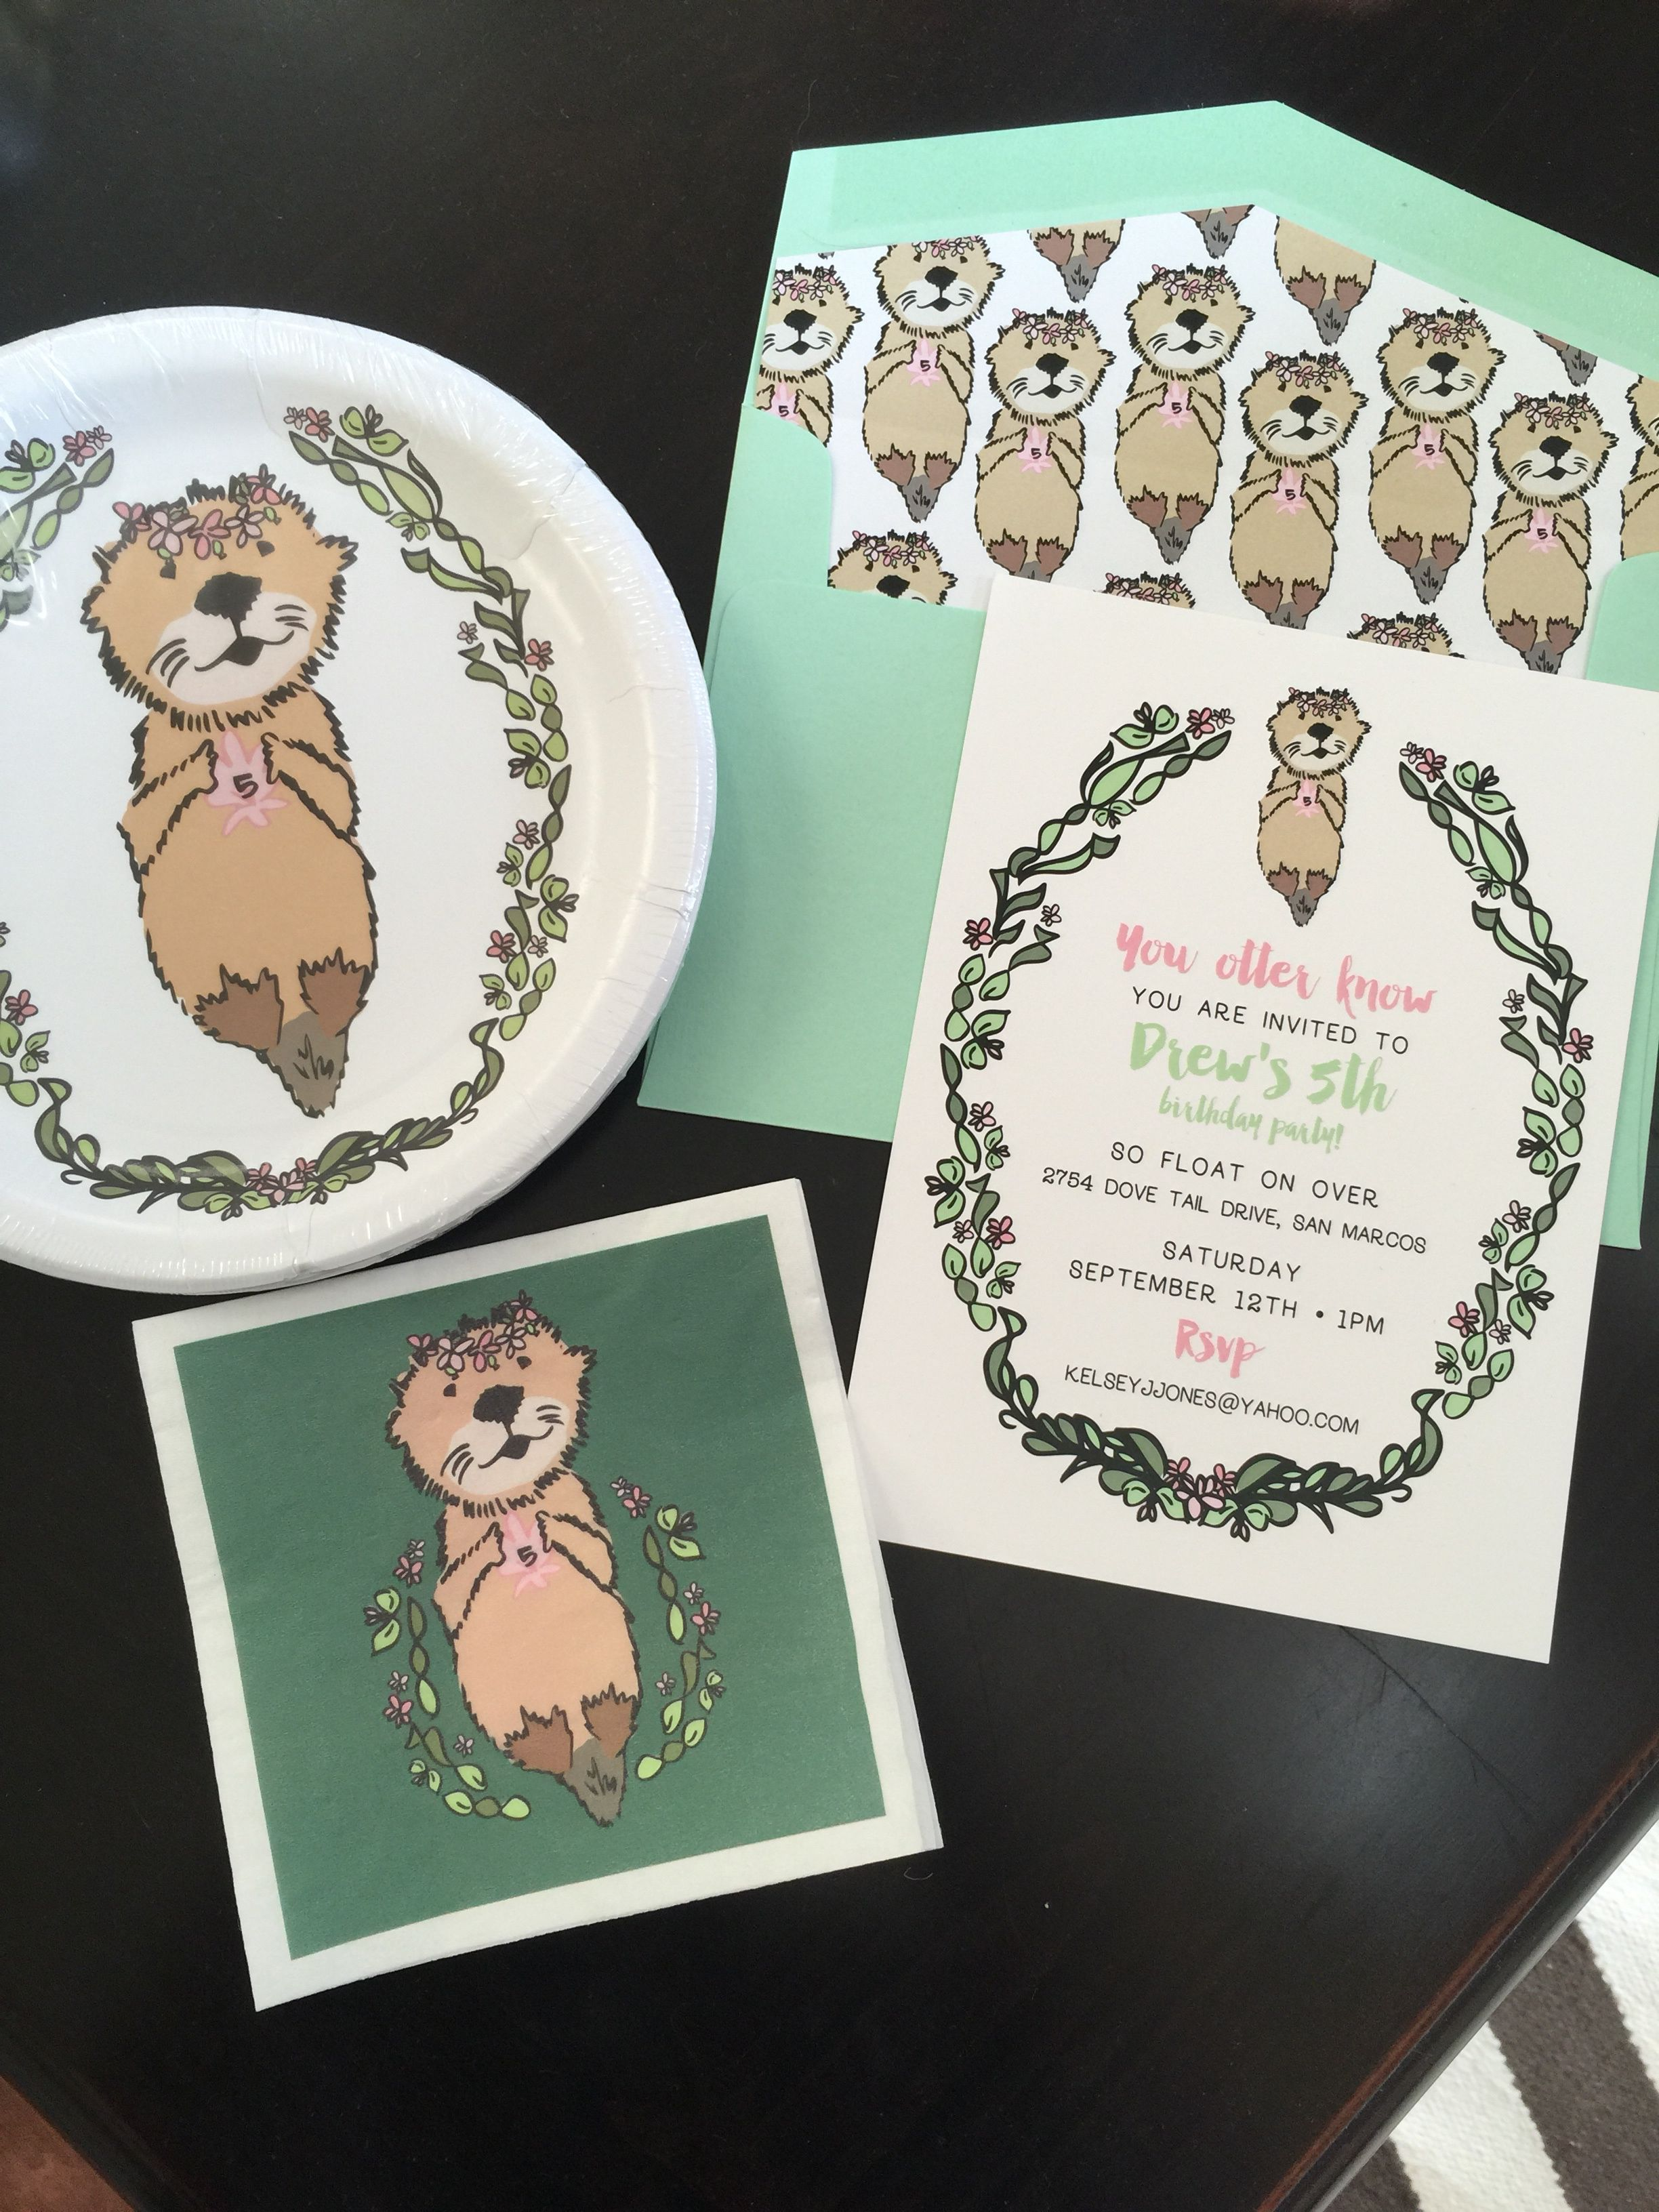 Drew\'s Sea Otter birthday party! Invitations and sea otter design by ...